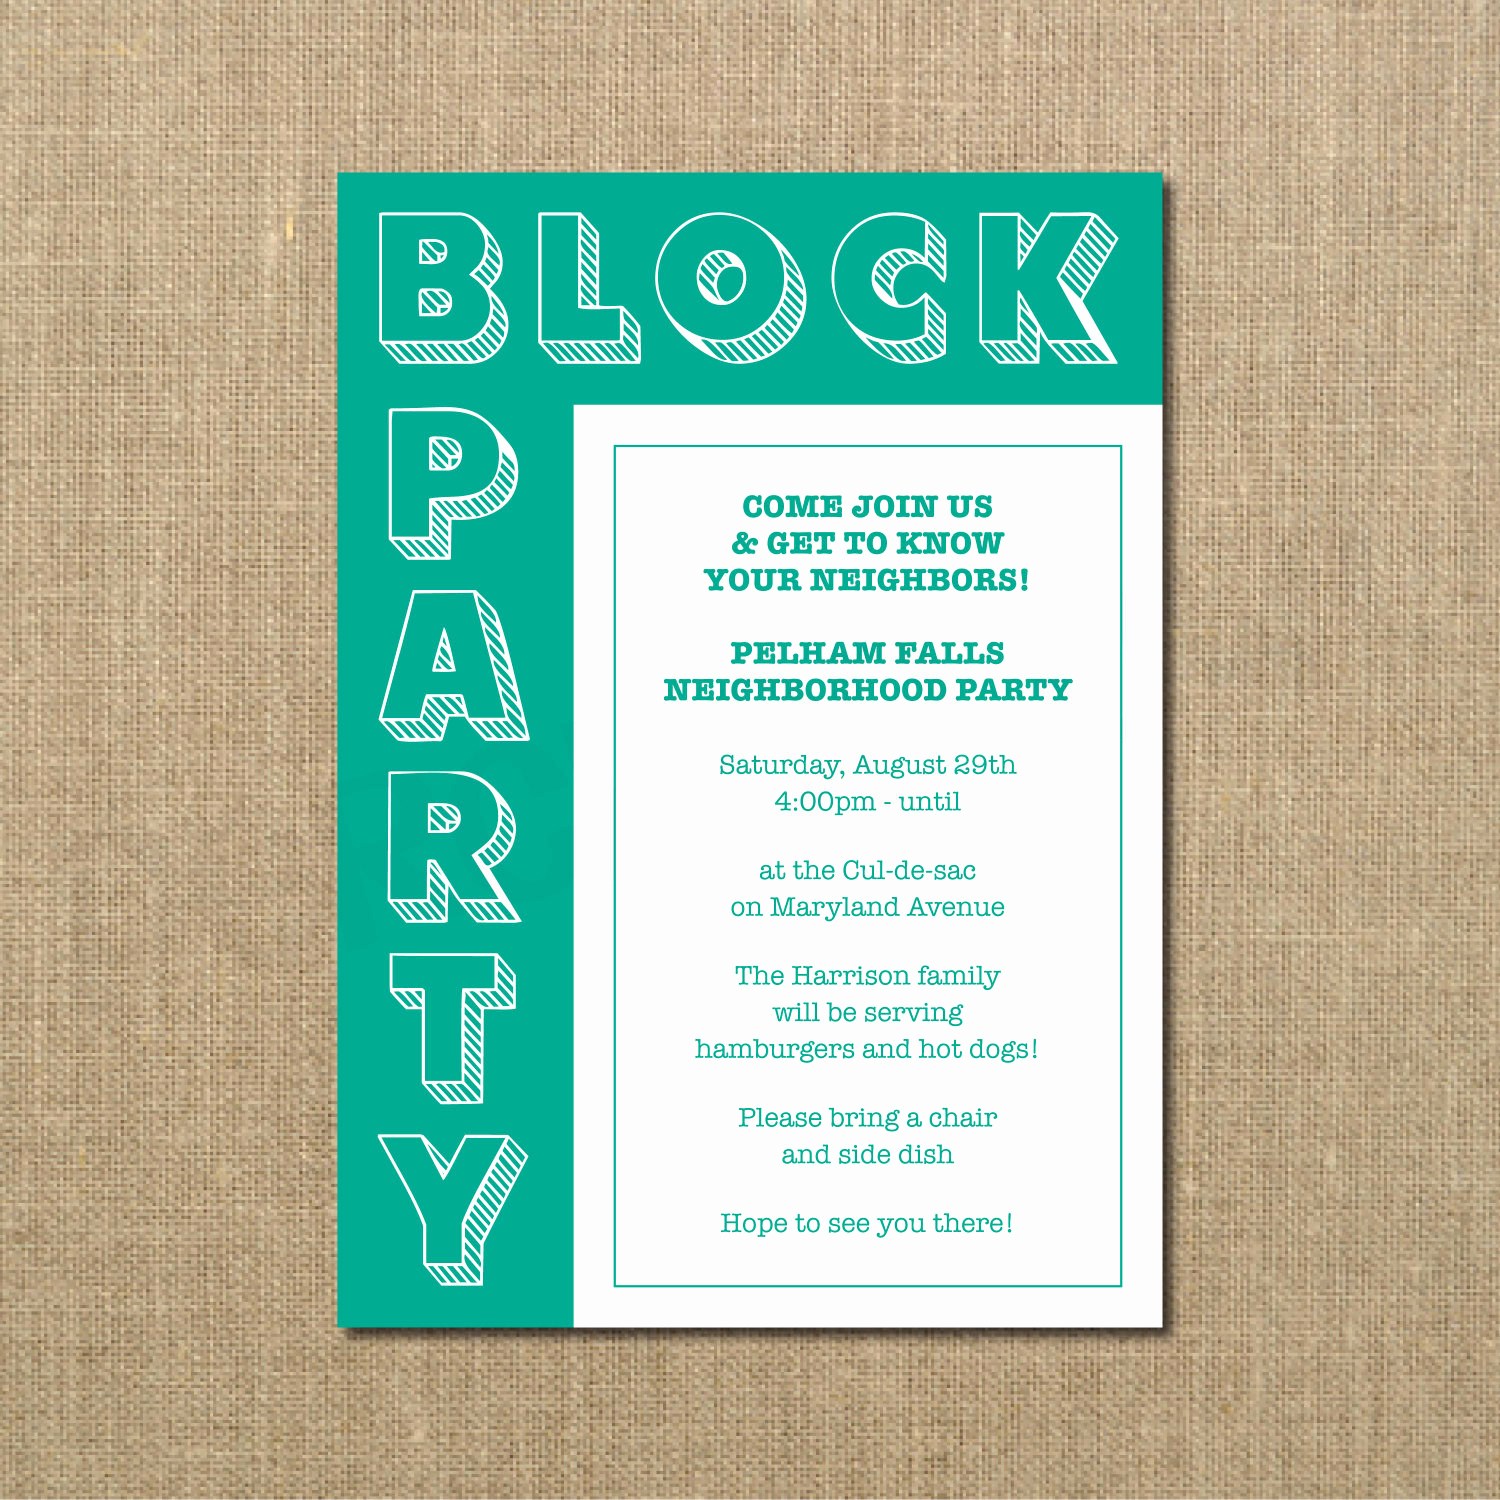 Neighborhood Party Invitation Wording Luxury Neighborhood Block Party Cookout Invitation Grilling Out